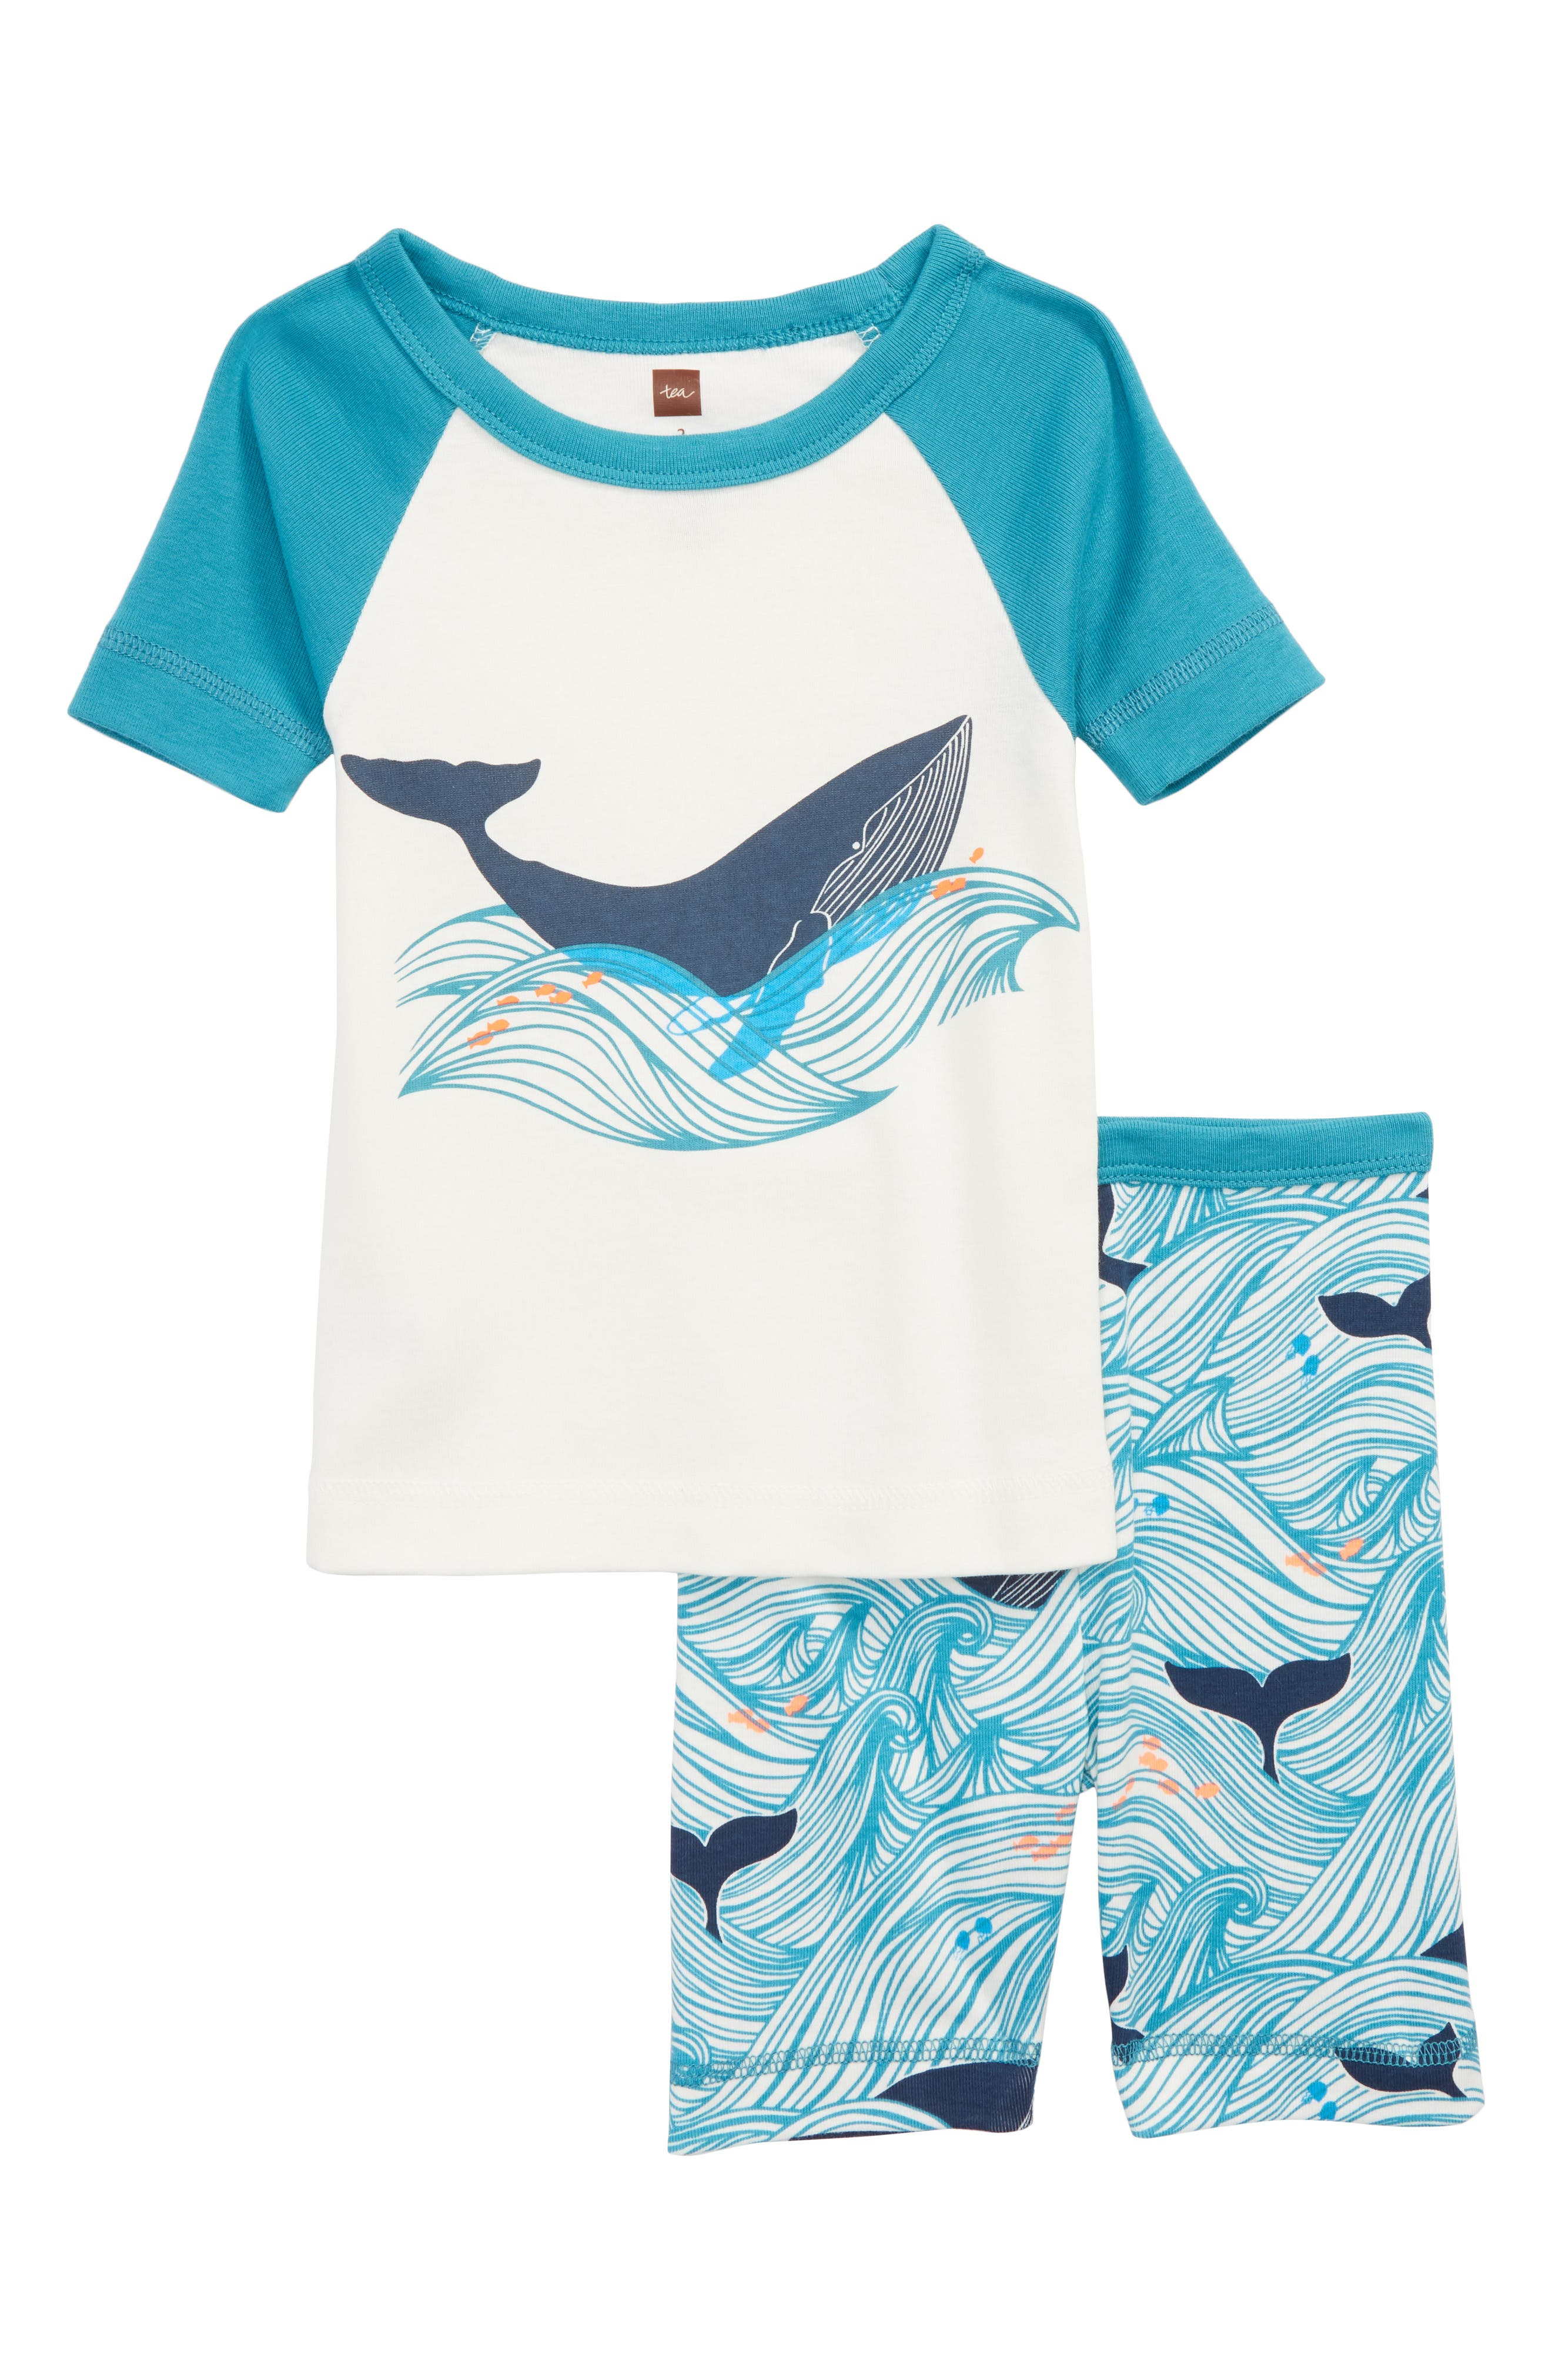 Wavy Whale Fitted Two-Piece Short Pajamas,                             Main thumbnail 1, color,                             400